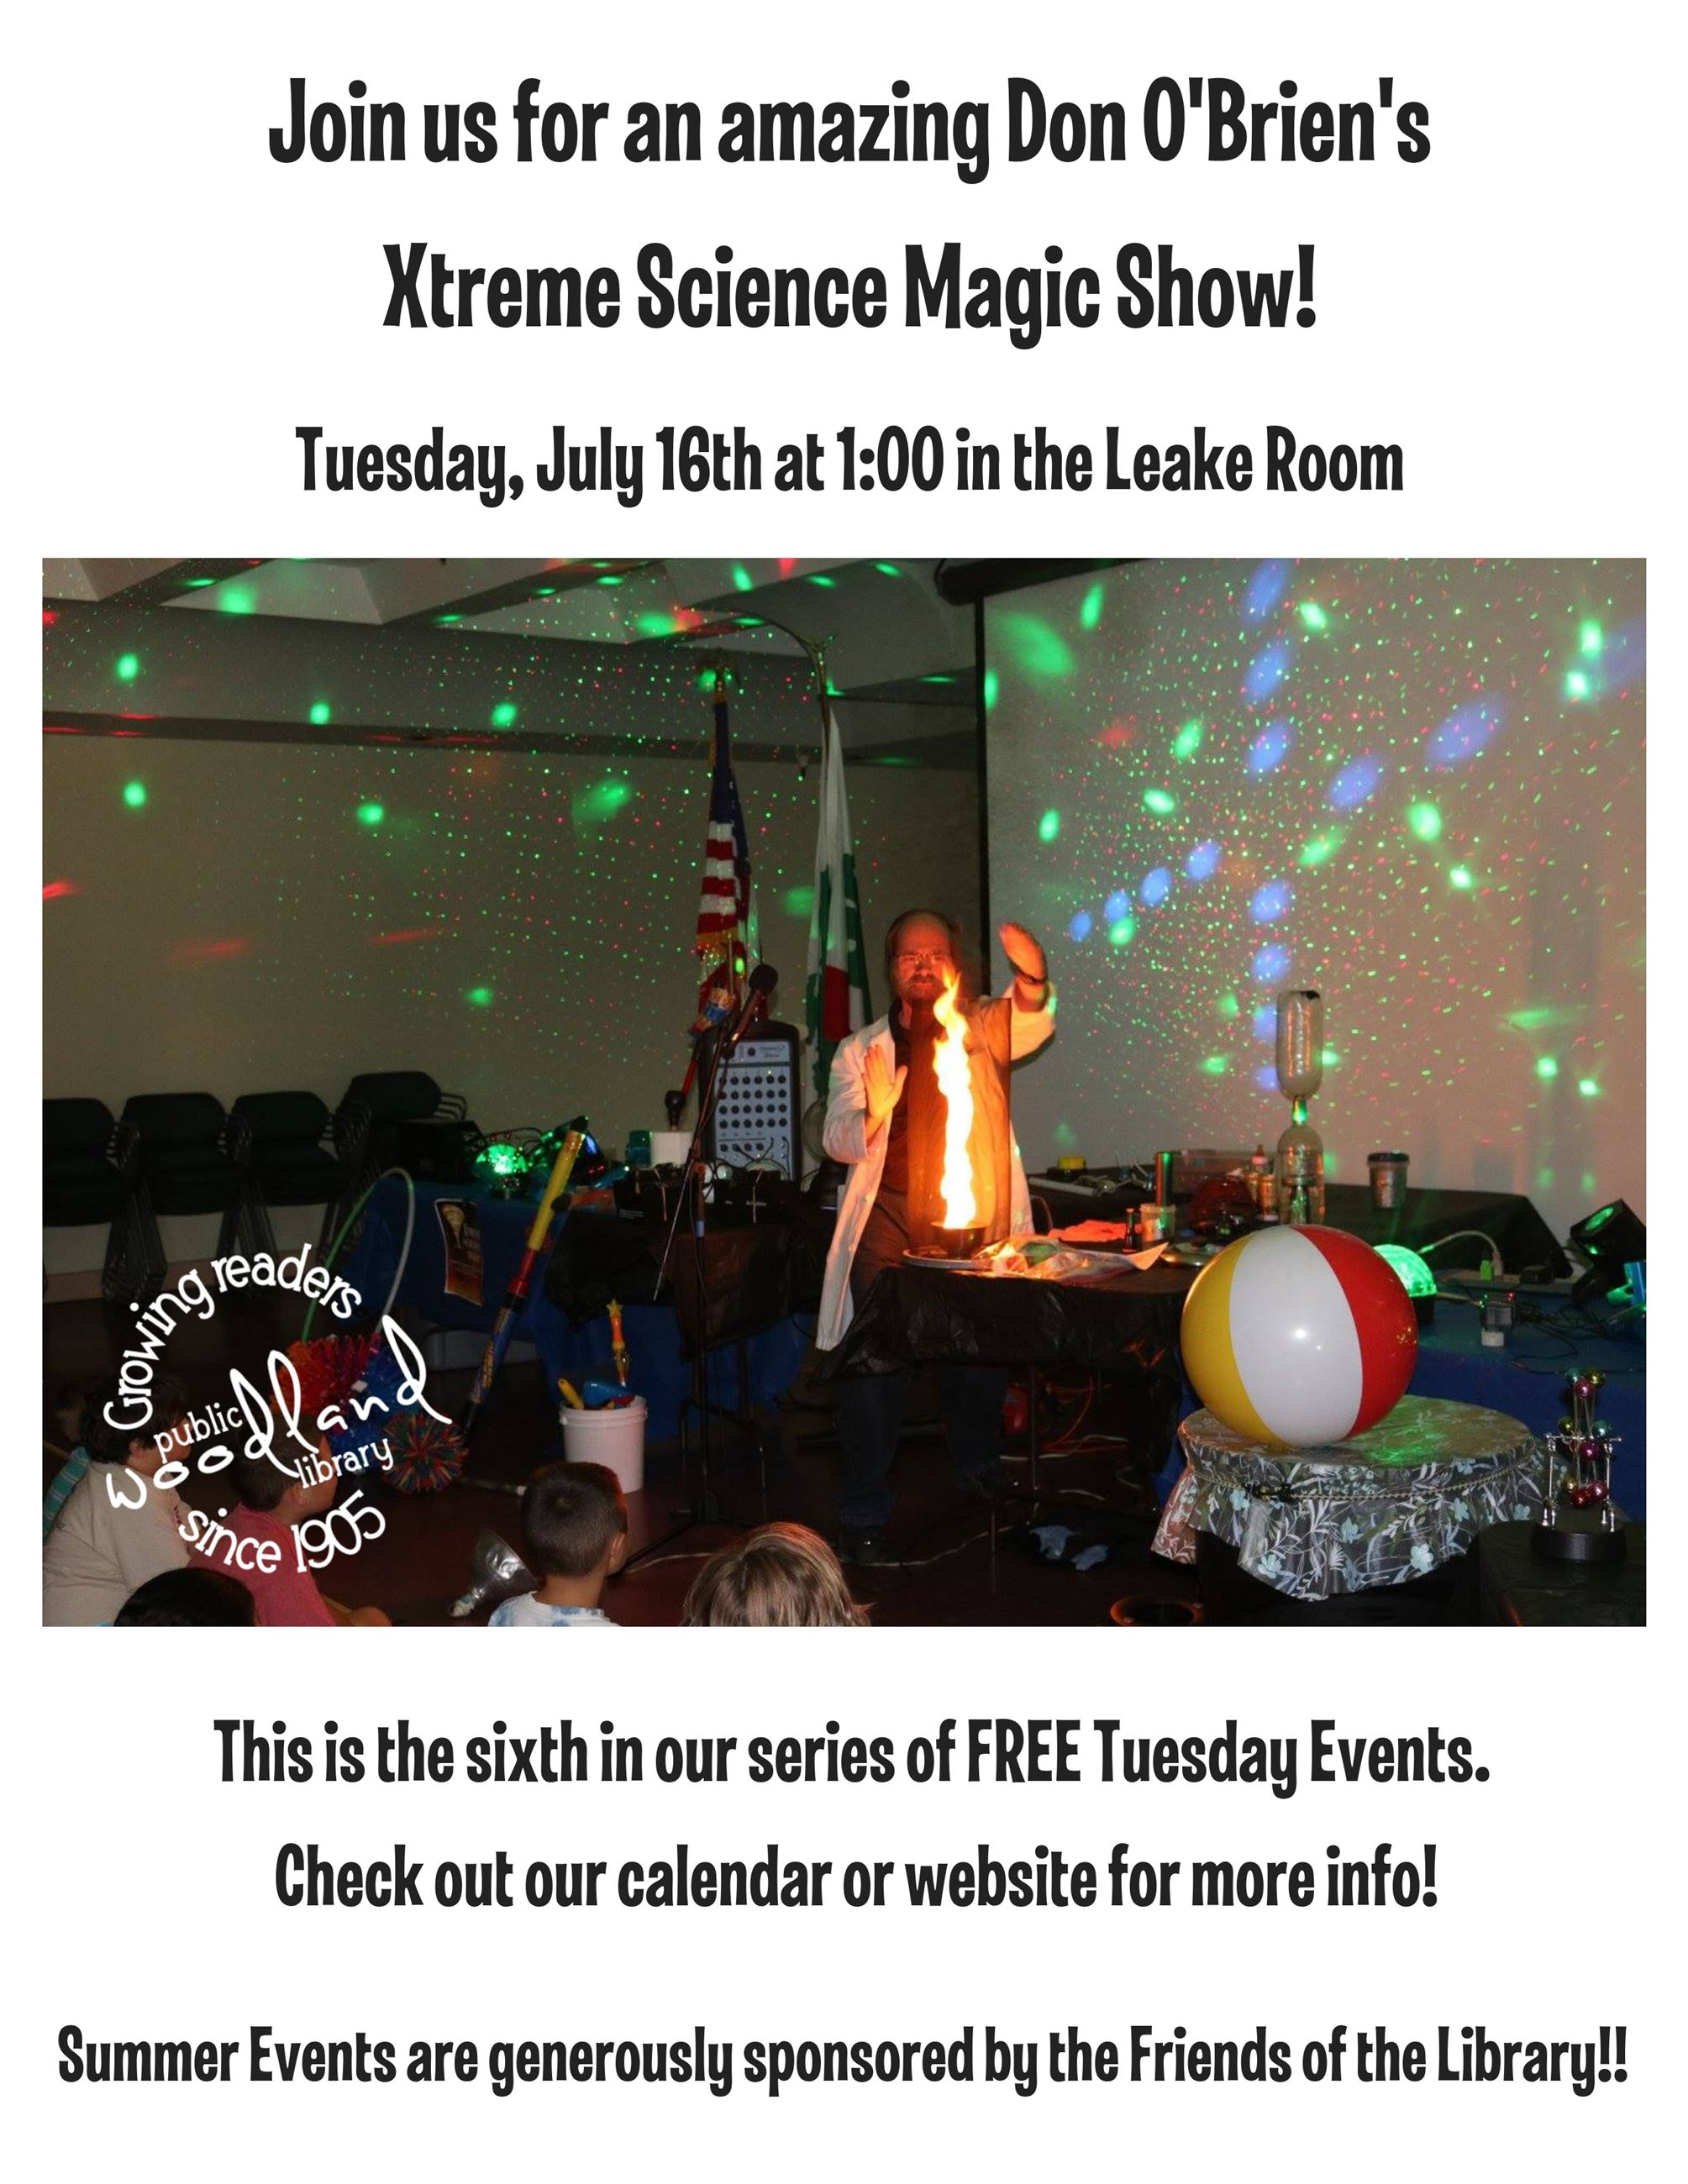 Xtreme Science Magic Flyer